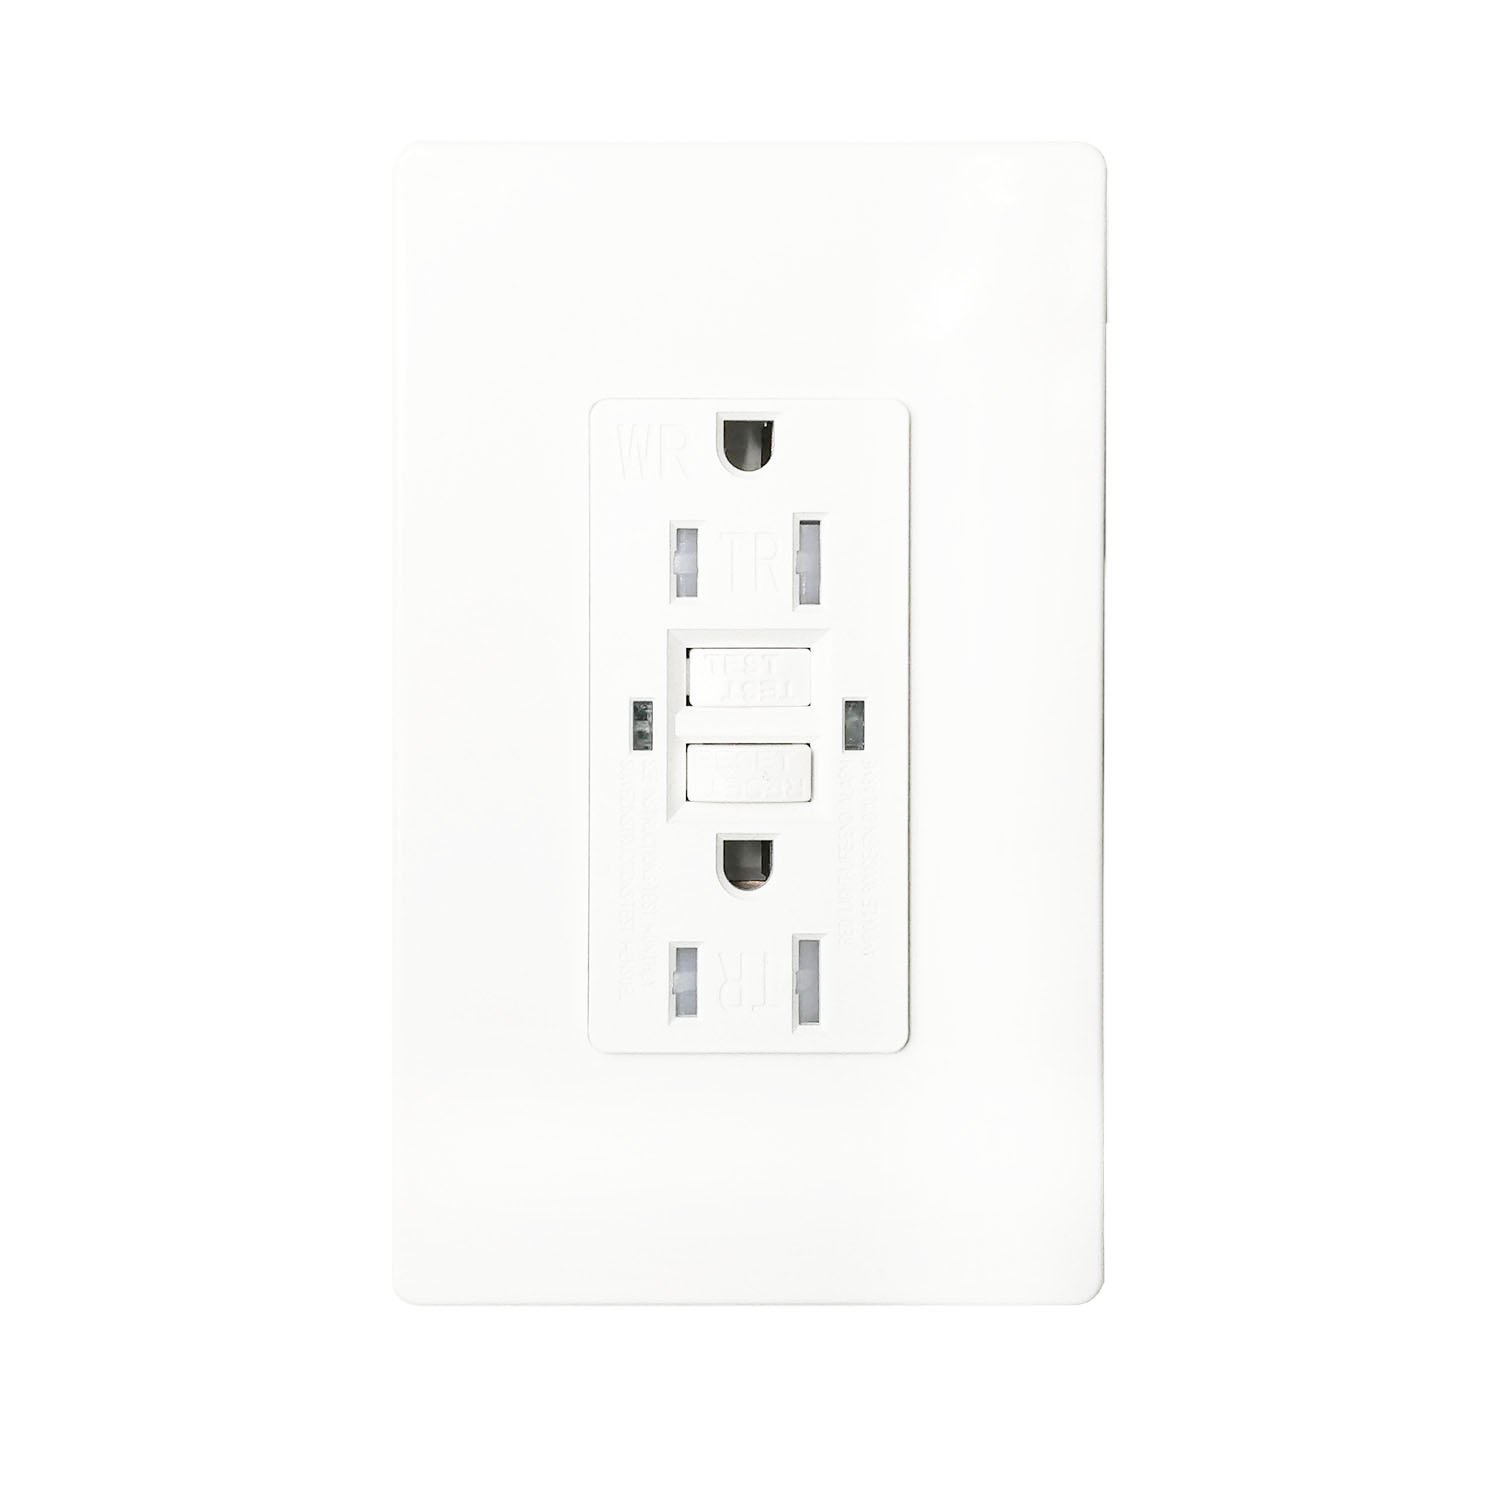 GFCI 15A TR WR Wall Outlet - LASOCKETS 15 Amp 125 Volt Tamper Resistant Socket For Standard Wall Receptacle Outlet, Residential Grade, Grounding, with Wall Plates, UL Listed (1 Pack) by LASOCKETS (Image #2)